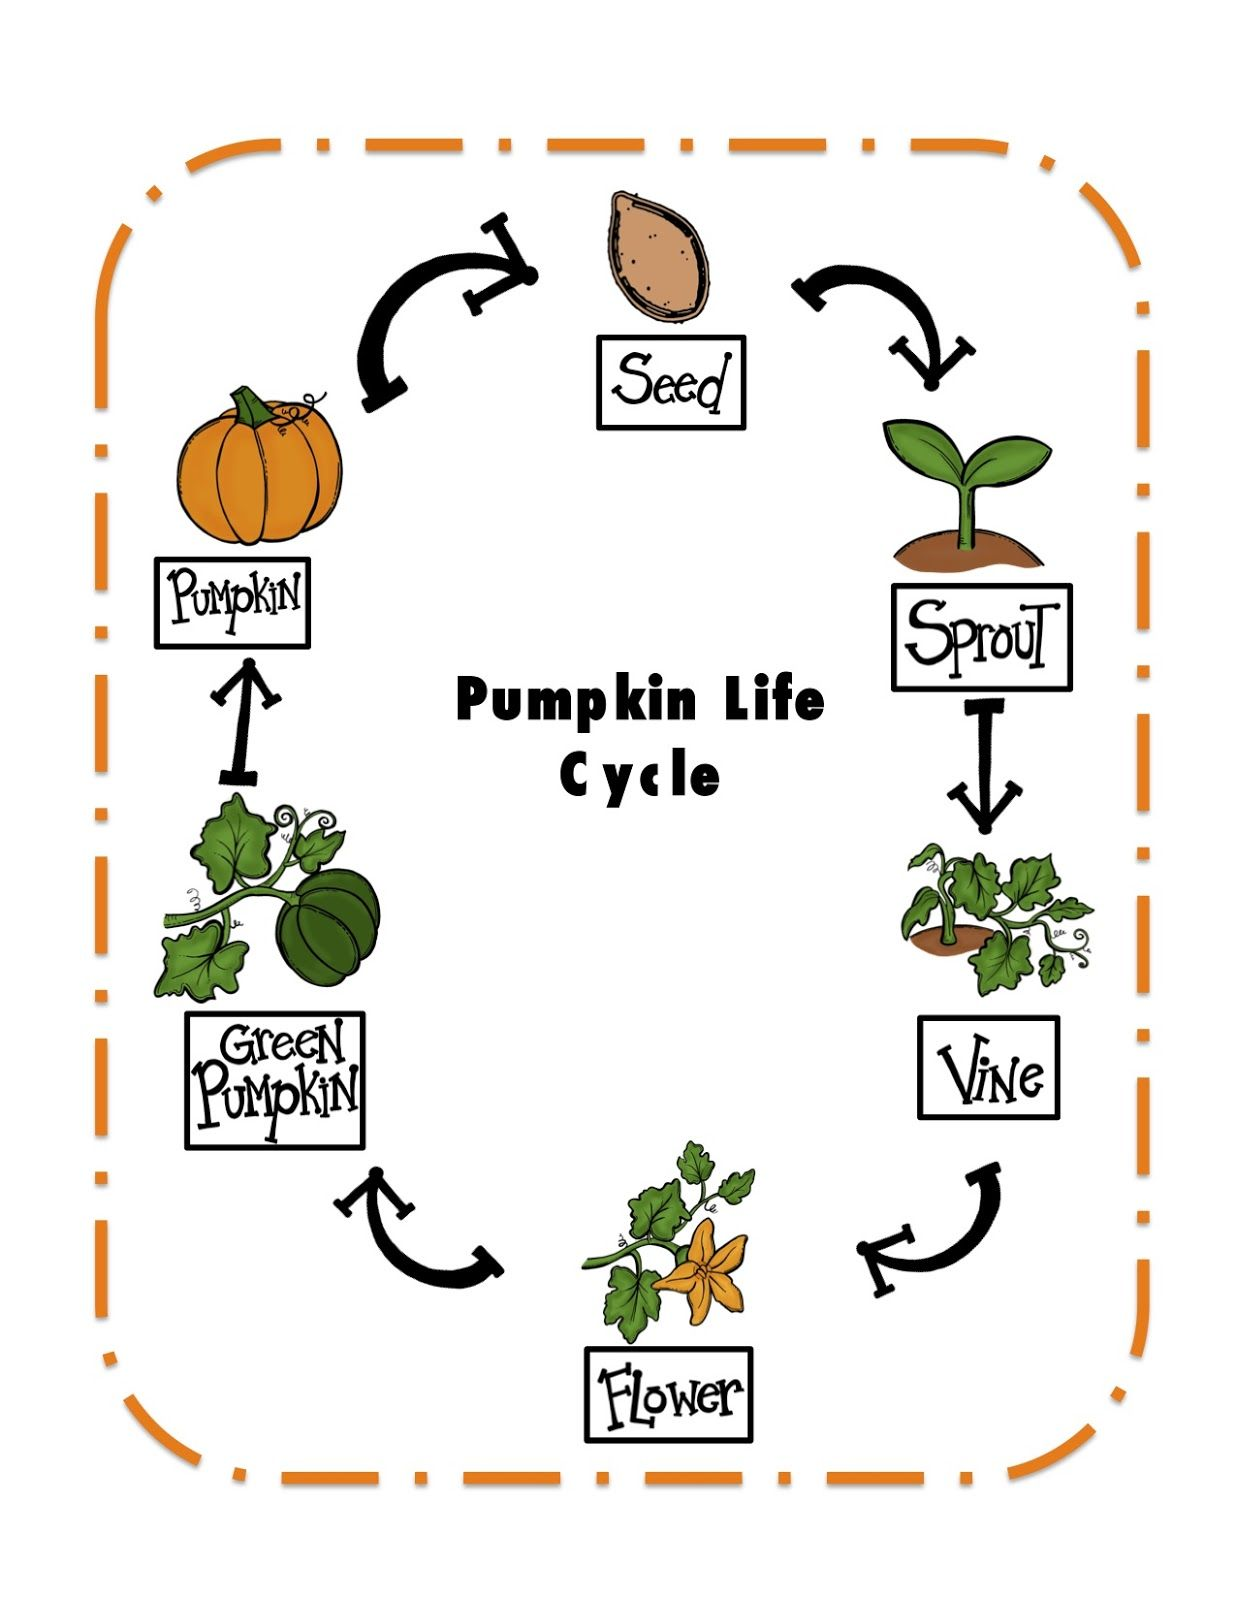 photograph about Pumpkin Life Cycle Printable titled Pumpkin Everyday living Cycle Printable ~ Preschool Printables